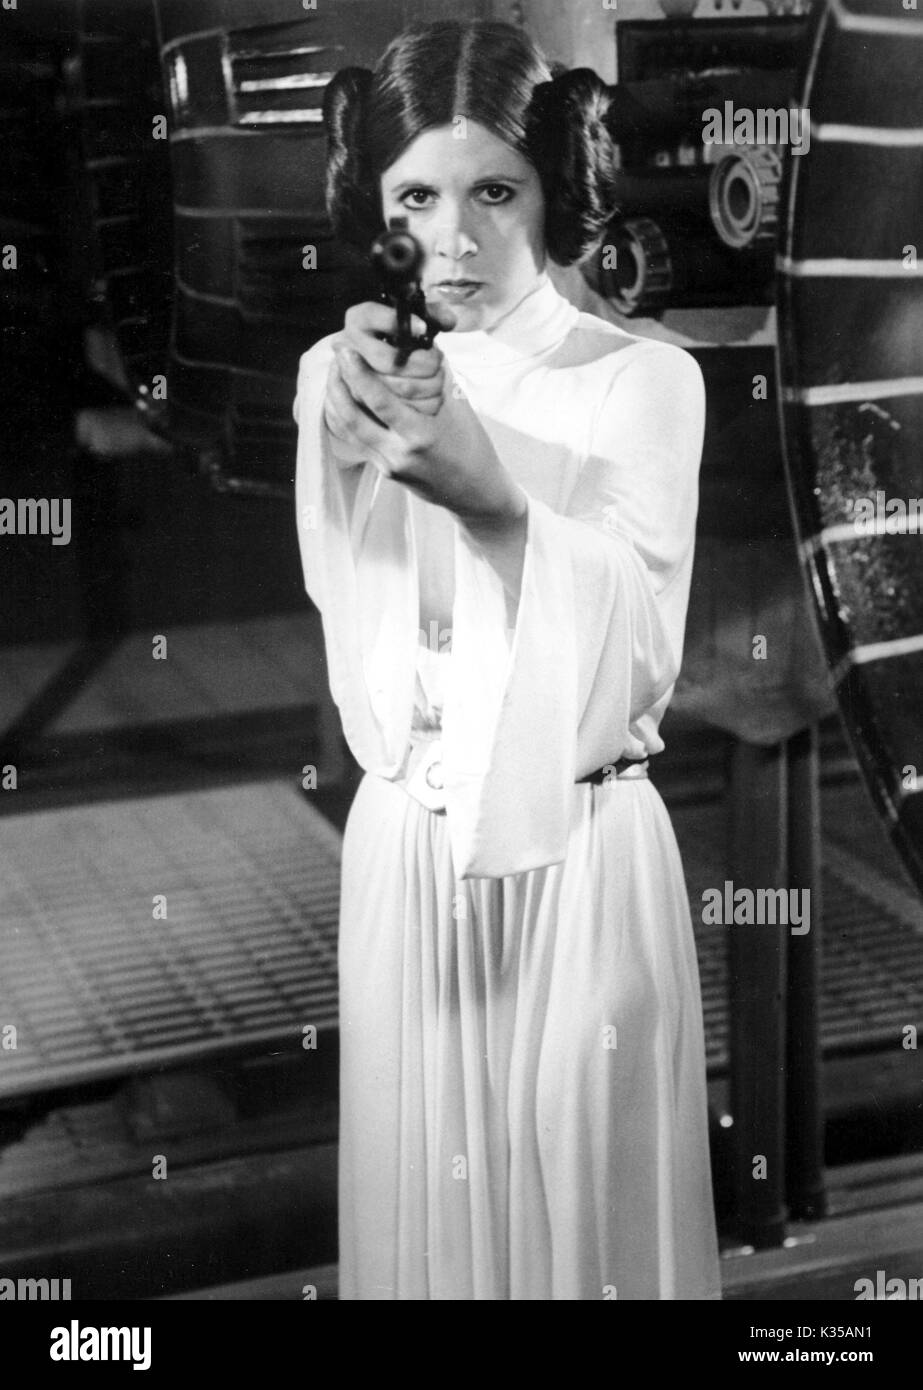 Photo Must Be Credited ©Supplied by Alpha 070000 (1977) Carrie Fisher as Princess Leia in Star Wars movie - Stock Image